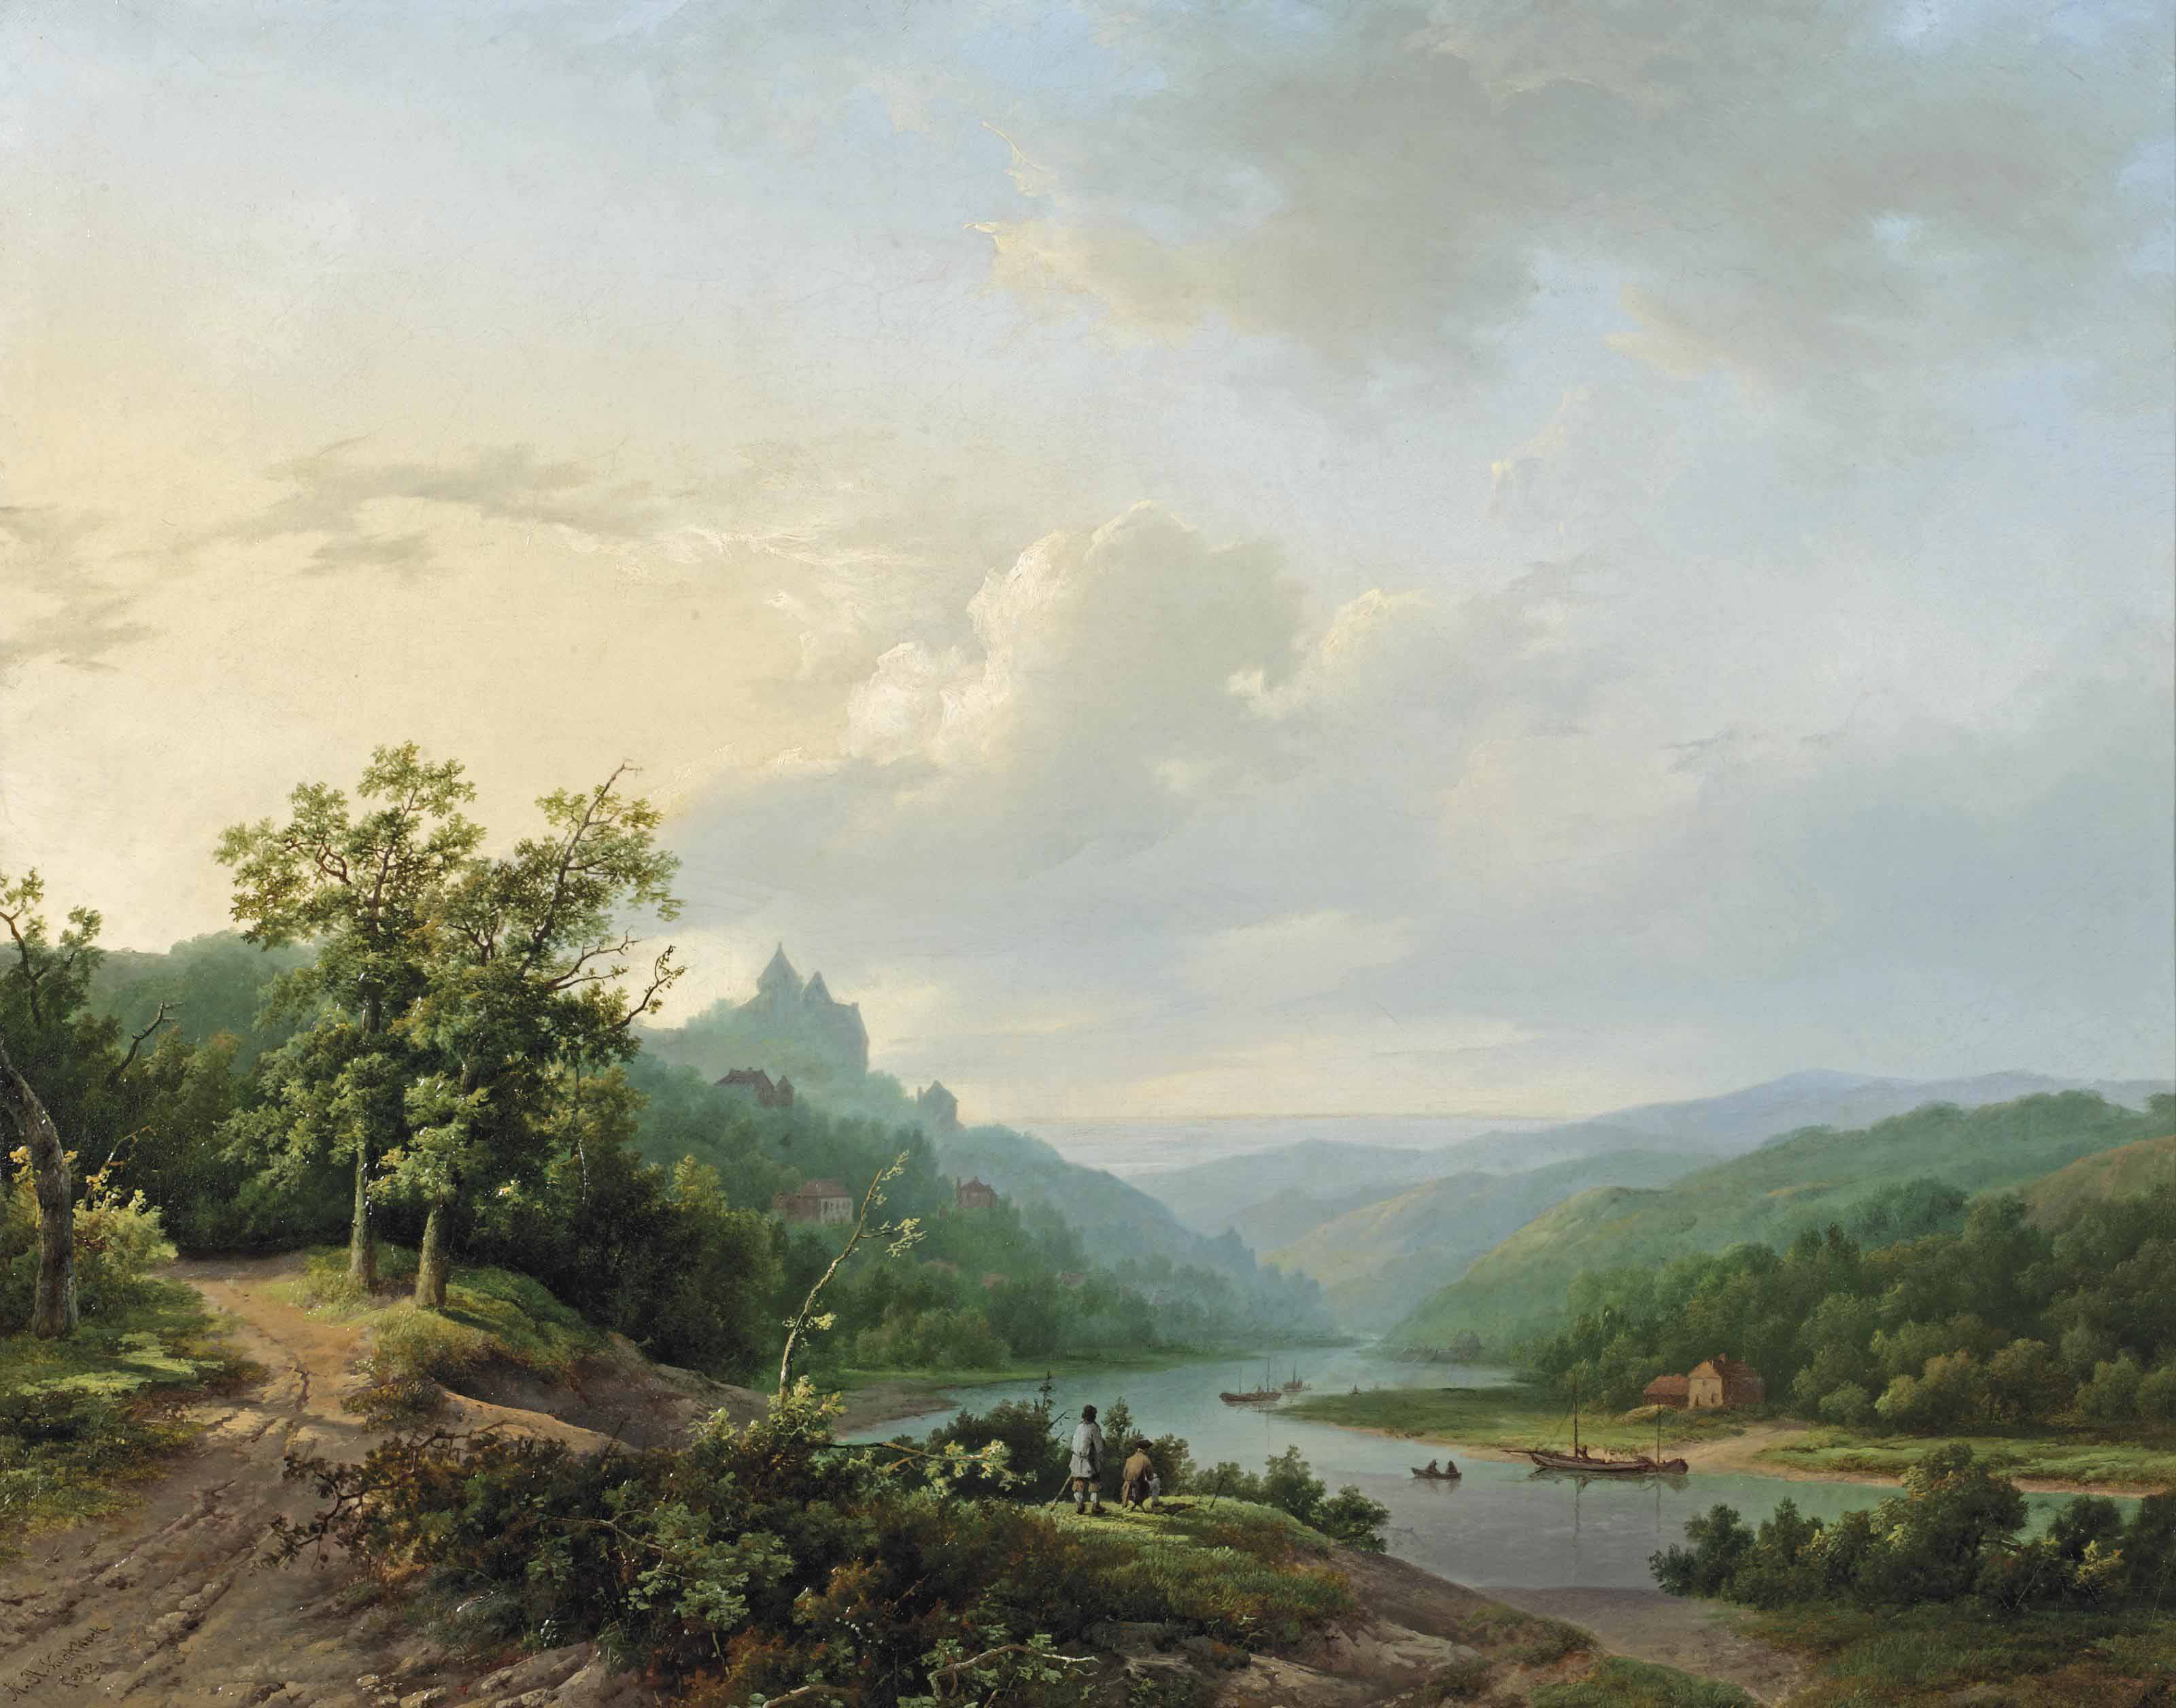 A view of the Rhein river near Cleves